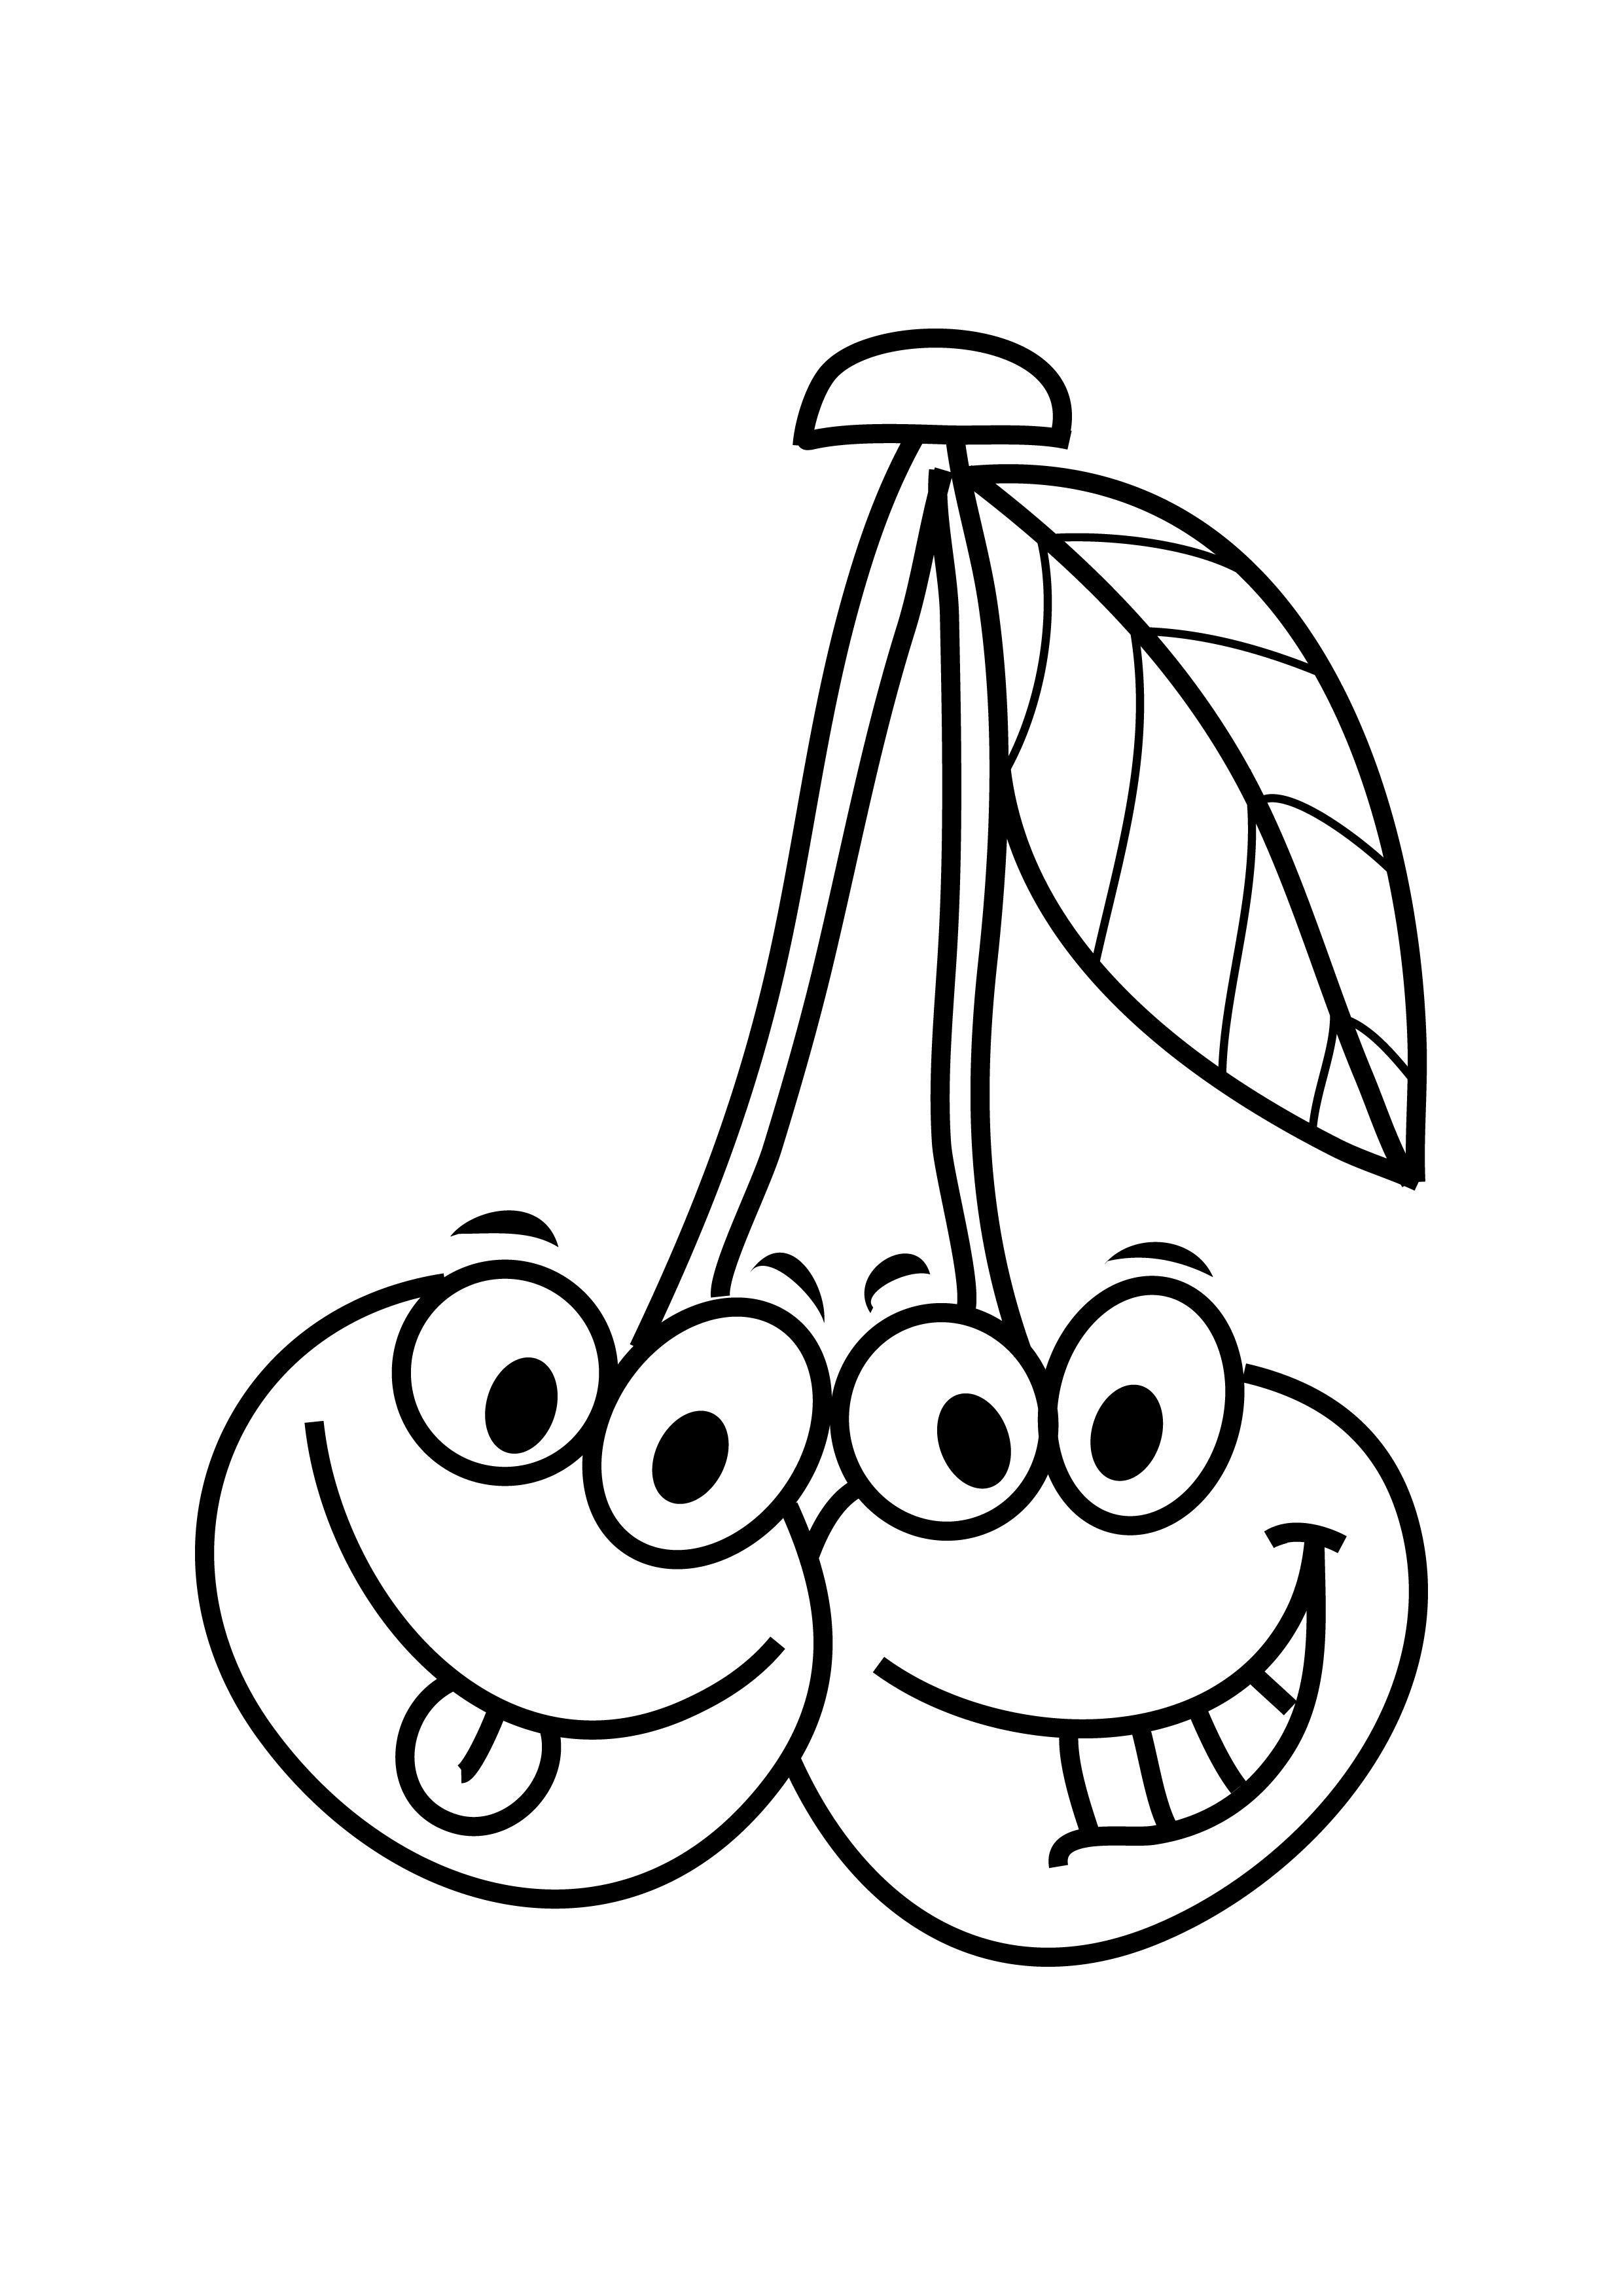 13 Best Images Of Matching Preschool Worksheets Fruits